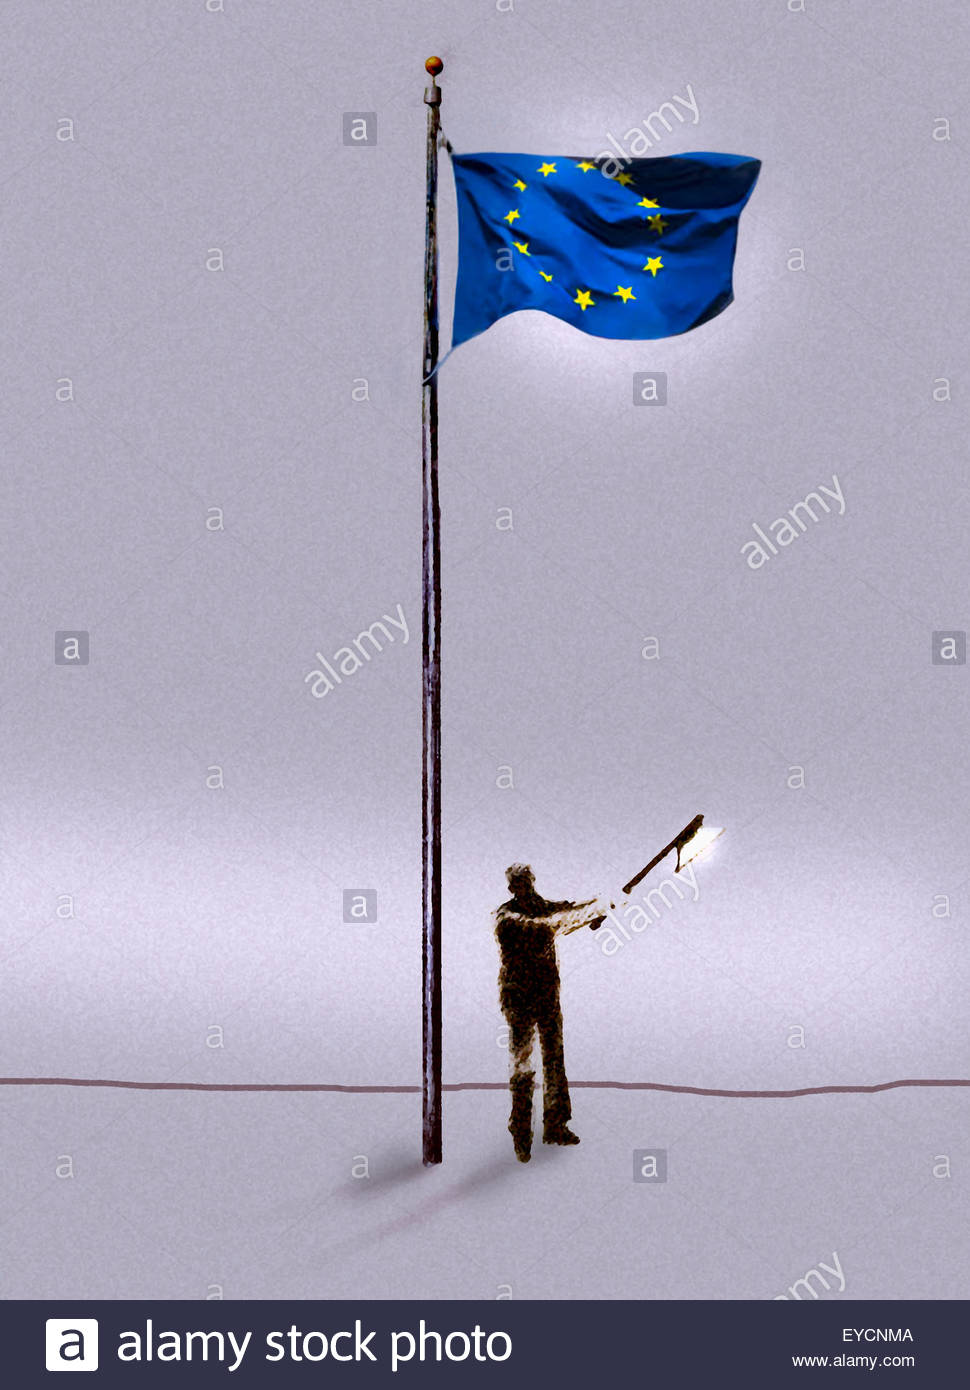 Man chopping down European Union flag pole - Stock Image